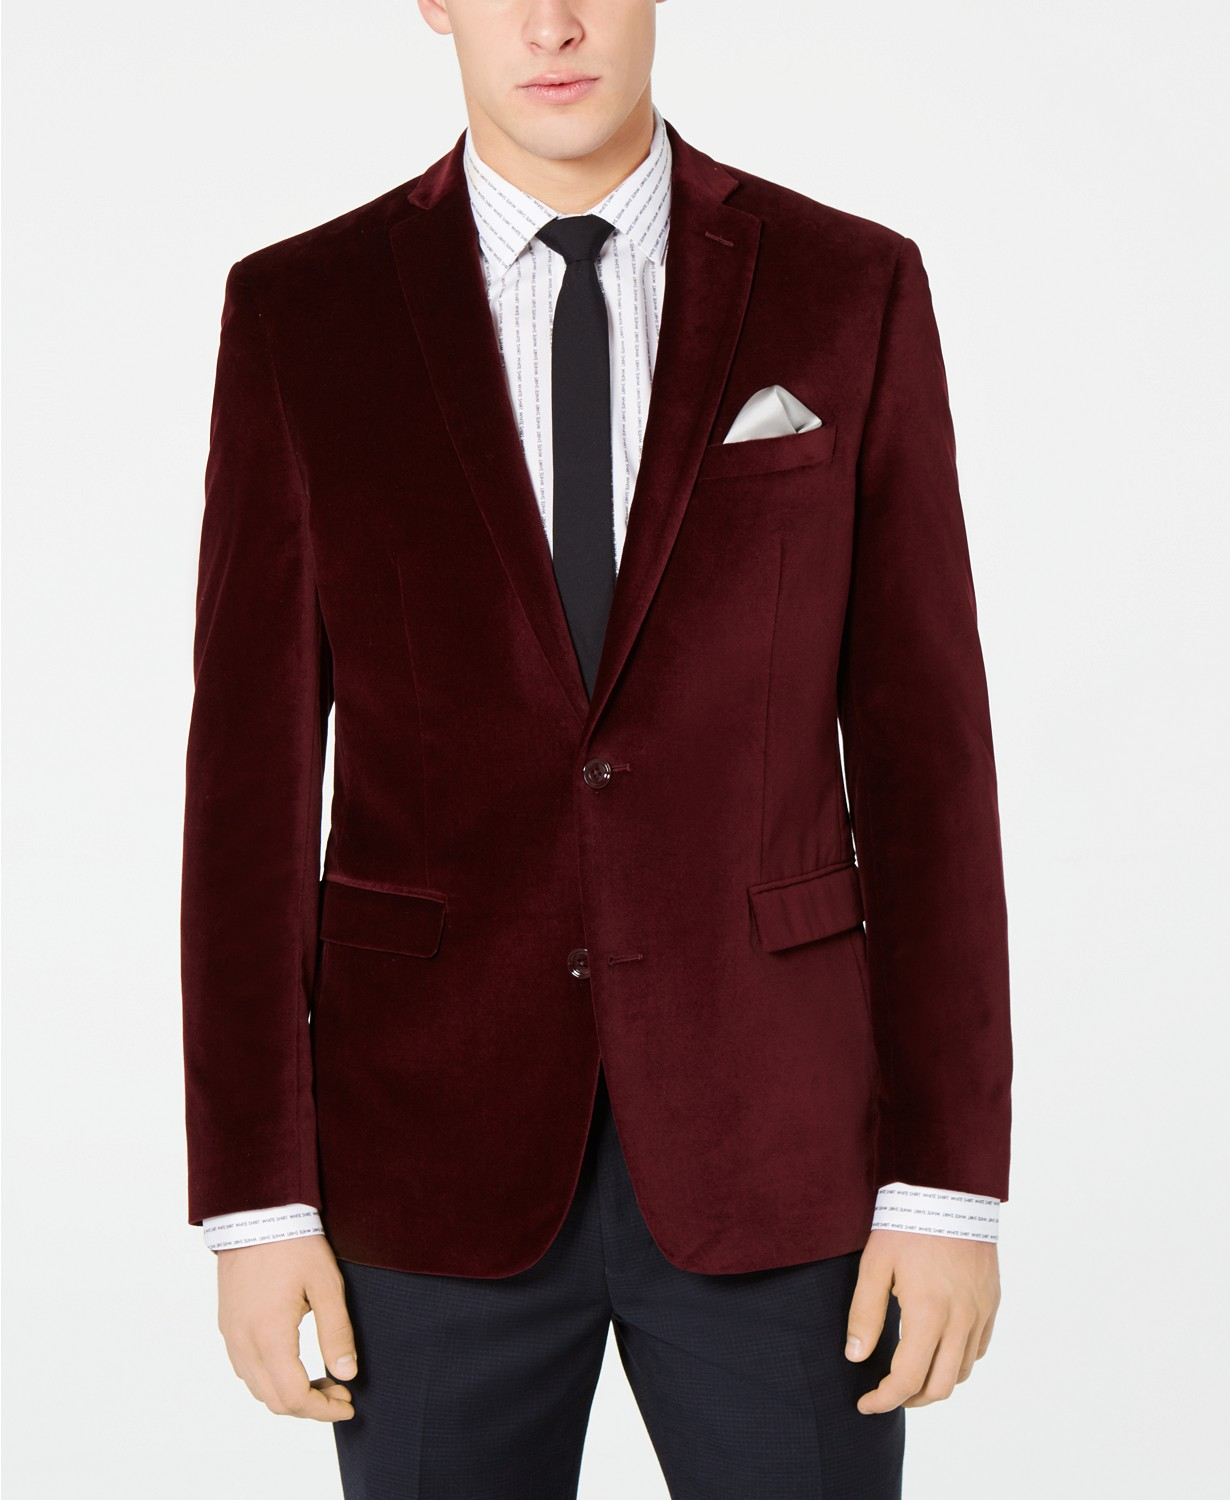 MACY'S: Velvet Slim-Fit Sport Coat $29.99